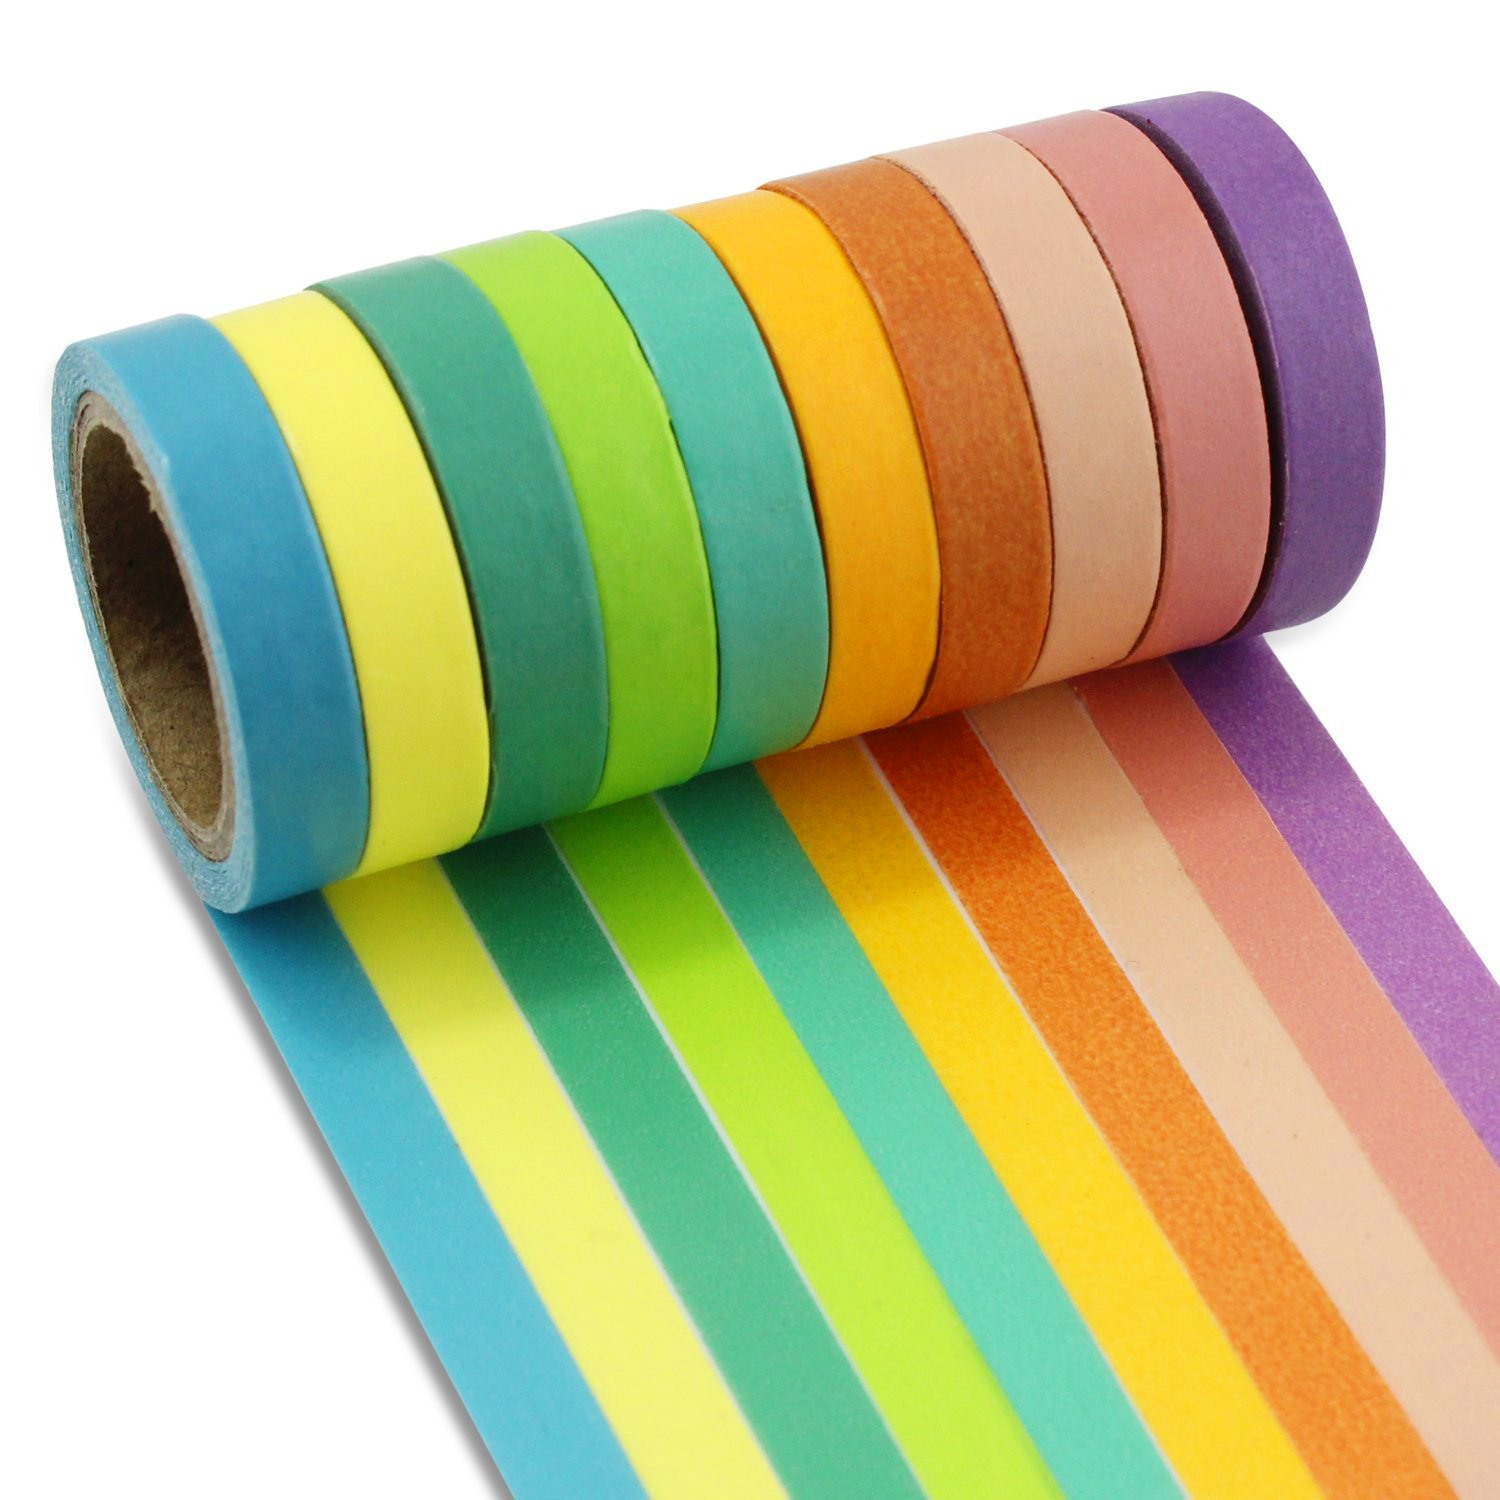 Ocr ® Decorative Washi Tape 10 Rolls DIY Rainbow Candy Color Sticky Masking Adhesive Tape Colorful Decorative Sticker